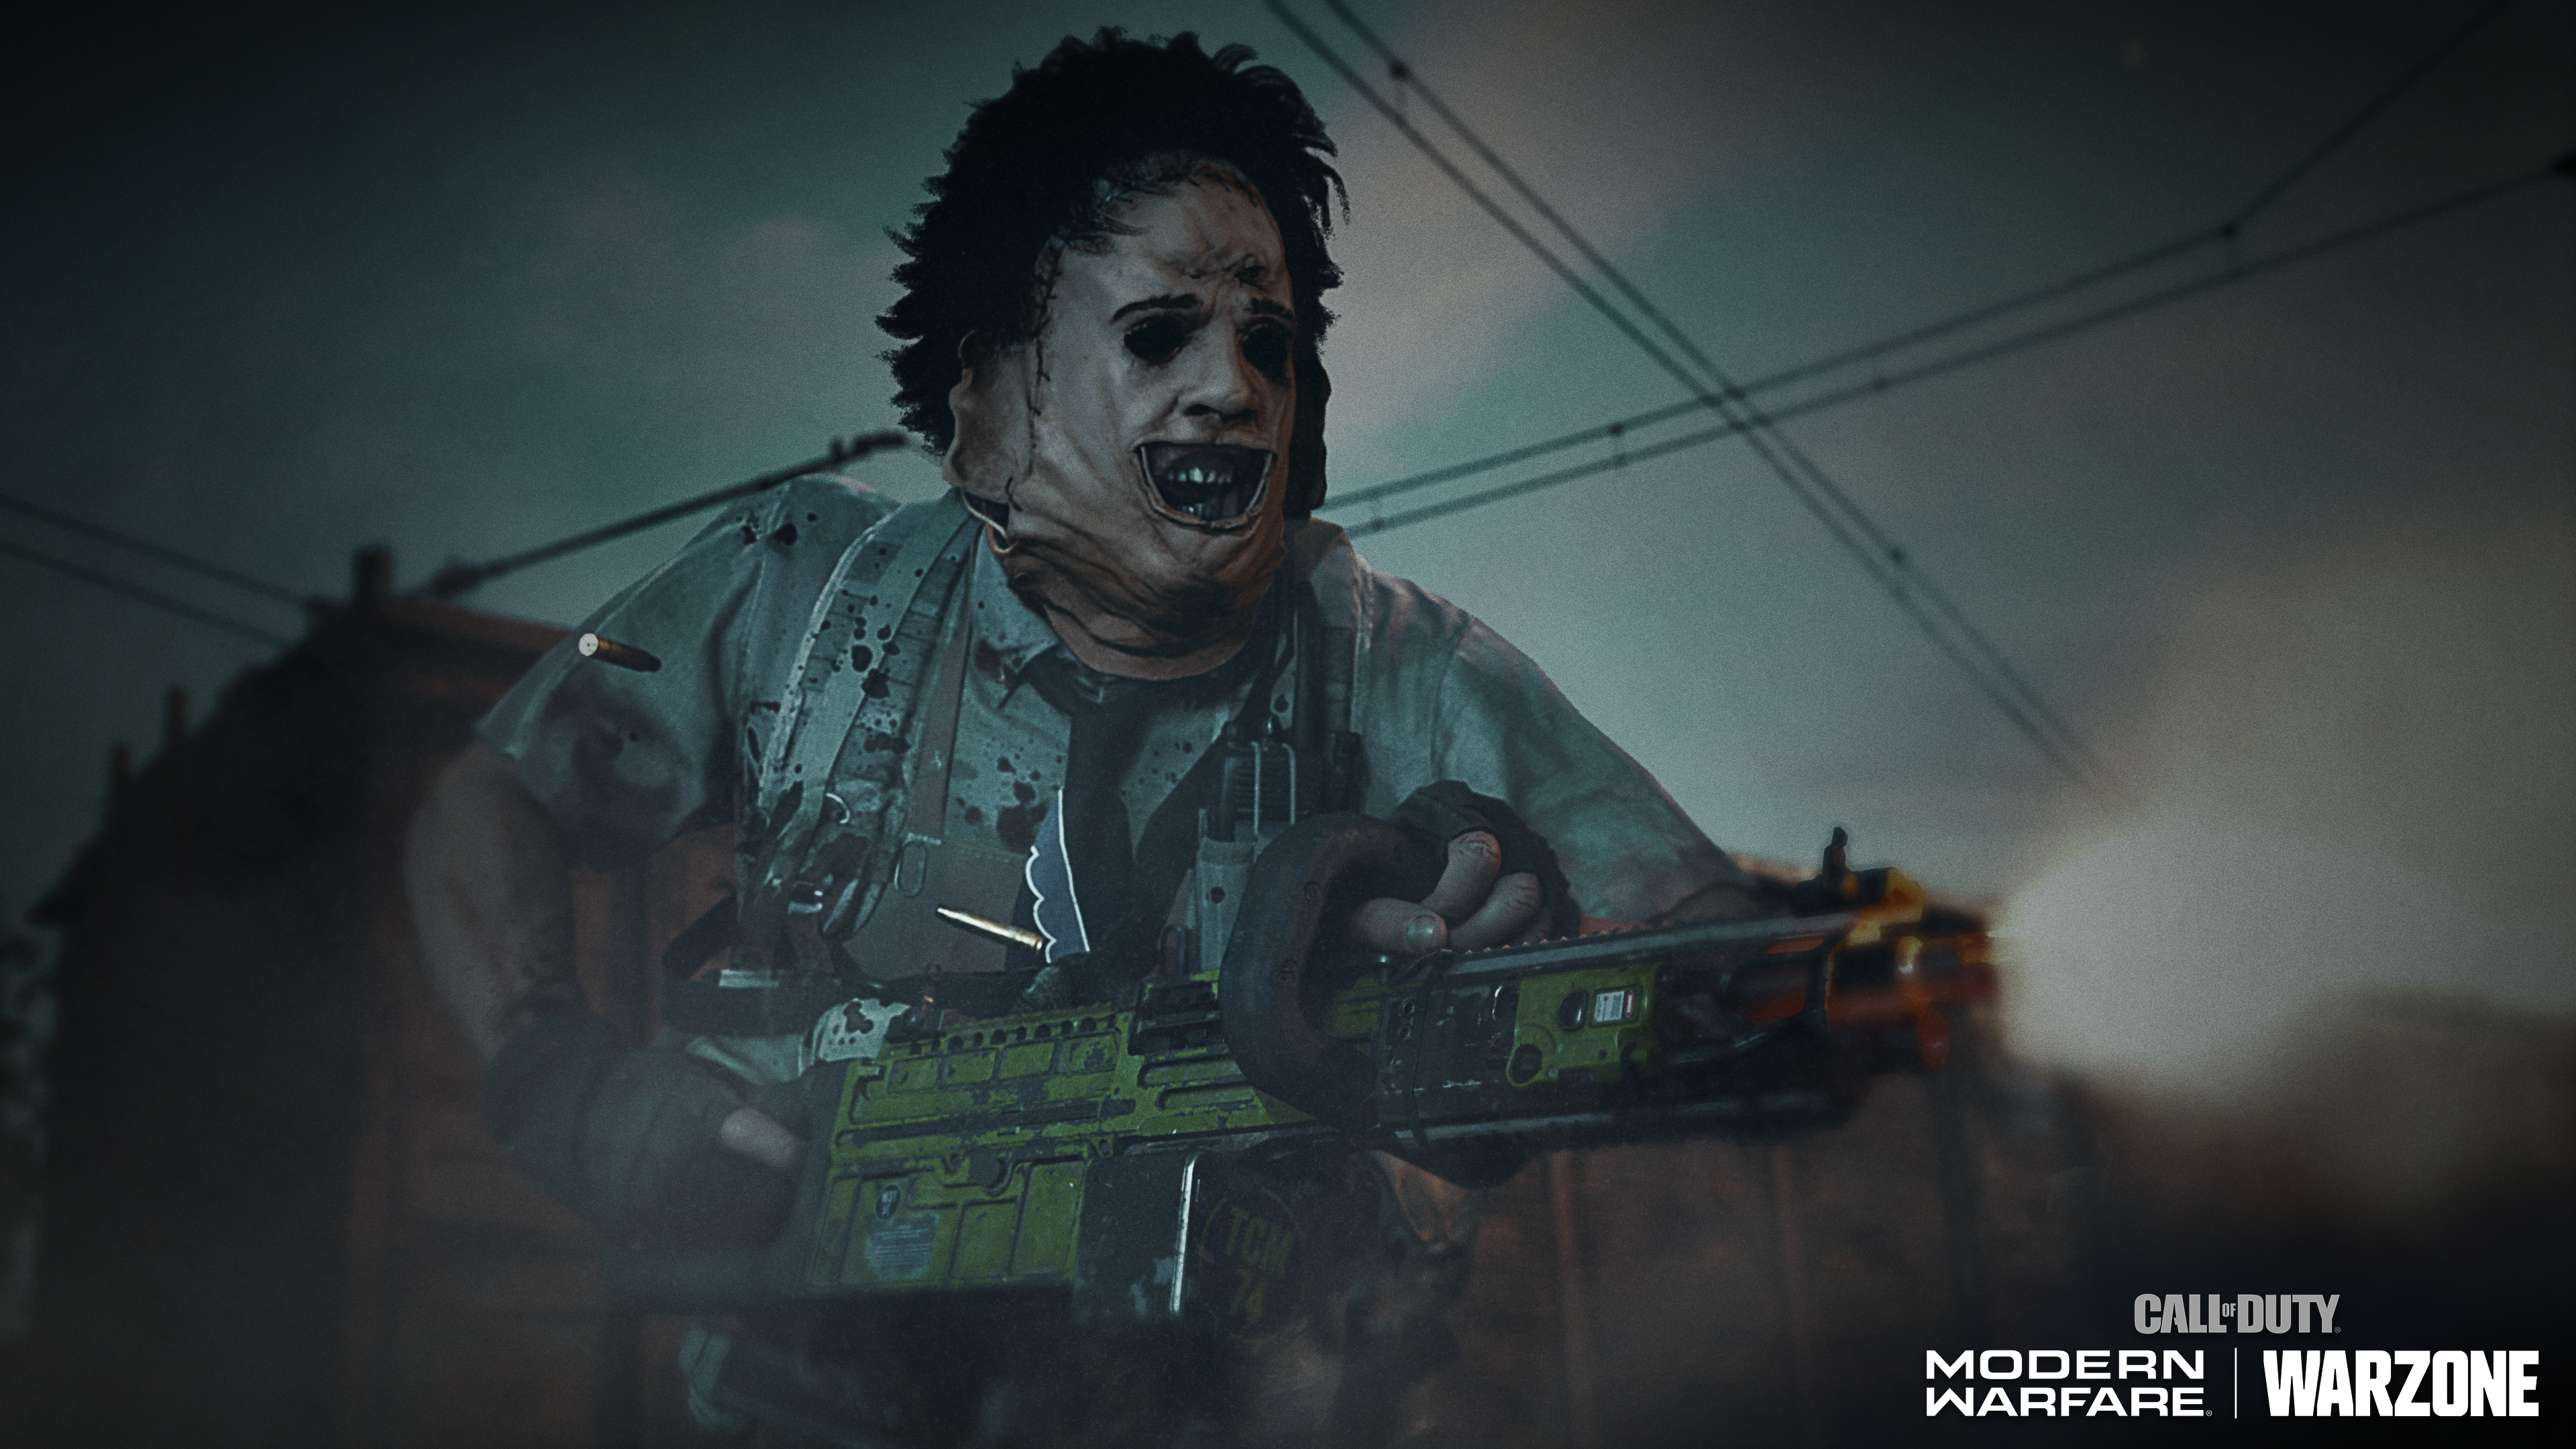 Leatherface in Call of Duty